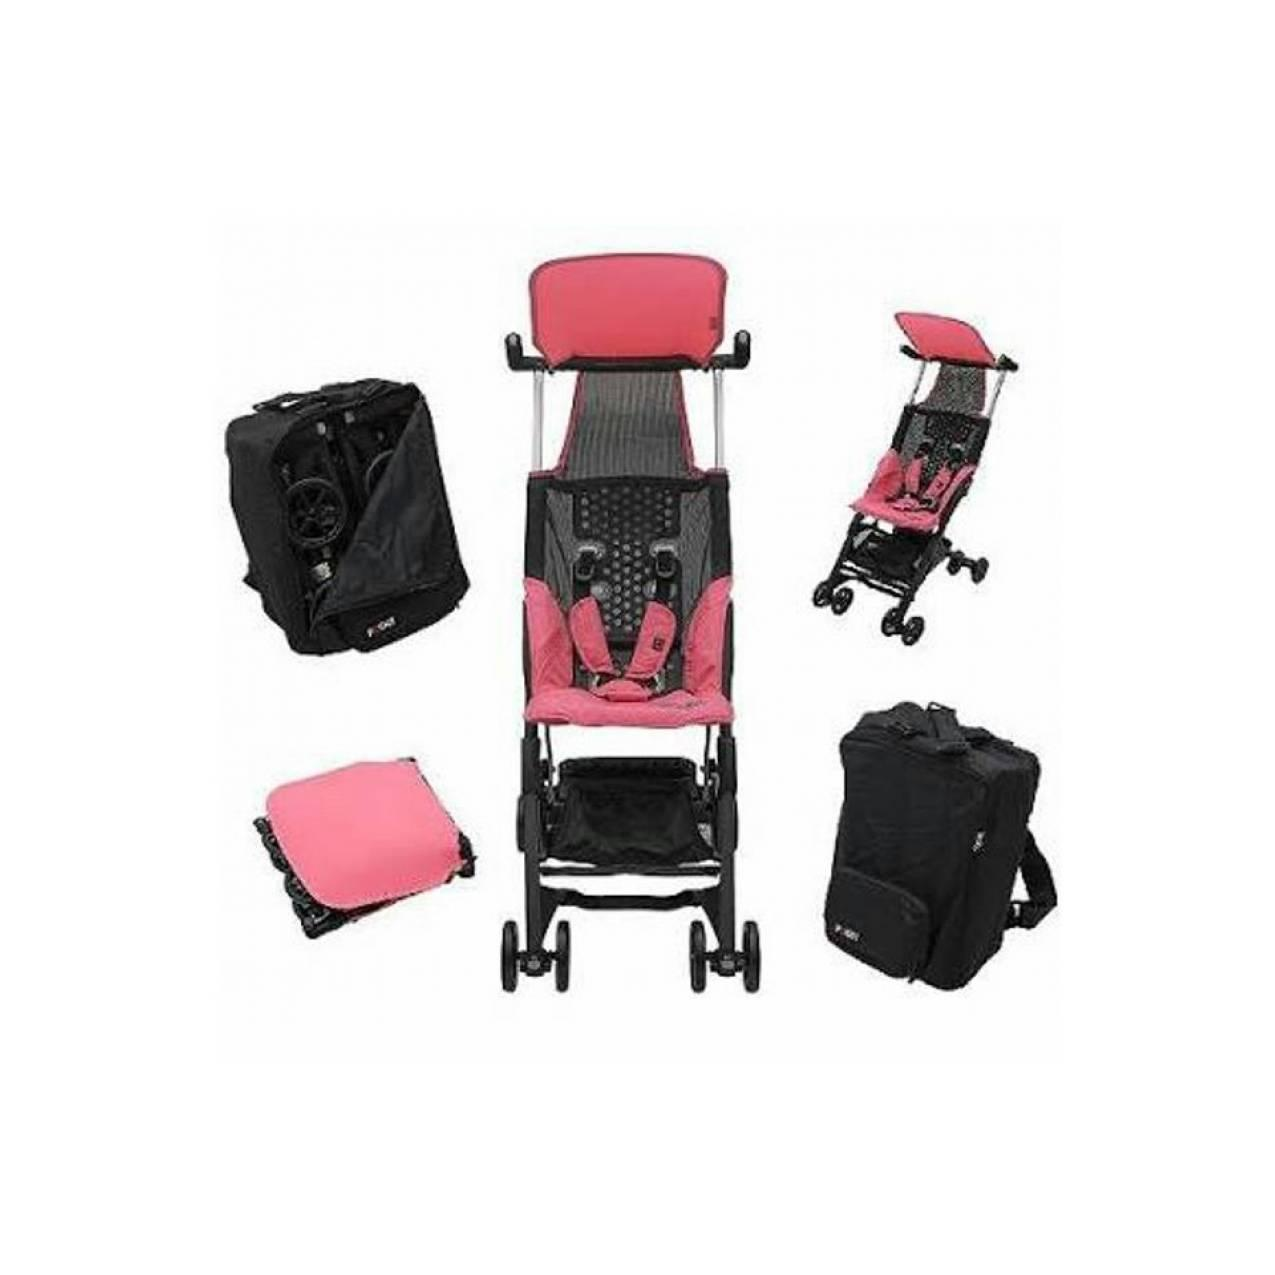 Buy Sell Cheapest Cocolatte Pockit3 Pockit Best Quality Product Pockitkereta Bayi Stroller Cl 688 3 Cl689 689 Pink Tas Backpack